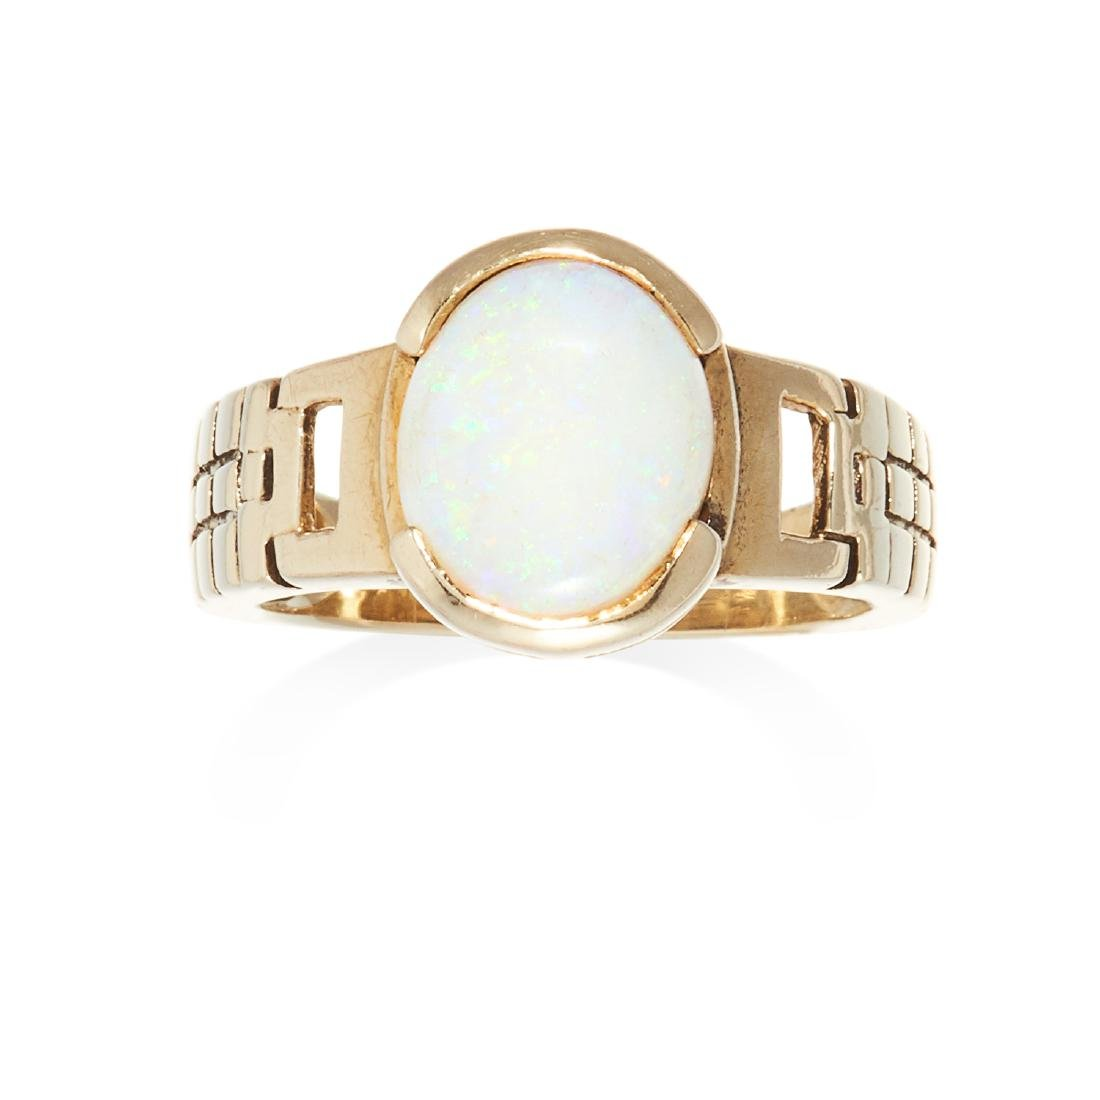 AN OPAL DRESS RING in 9ct yellow gold, set with an oval